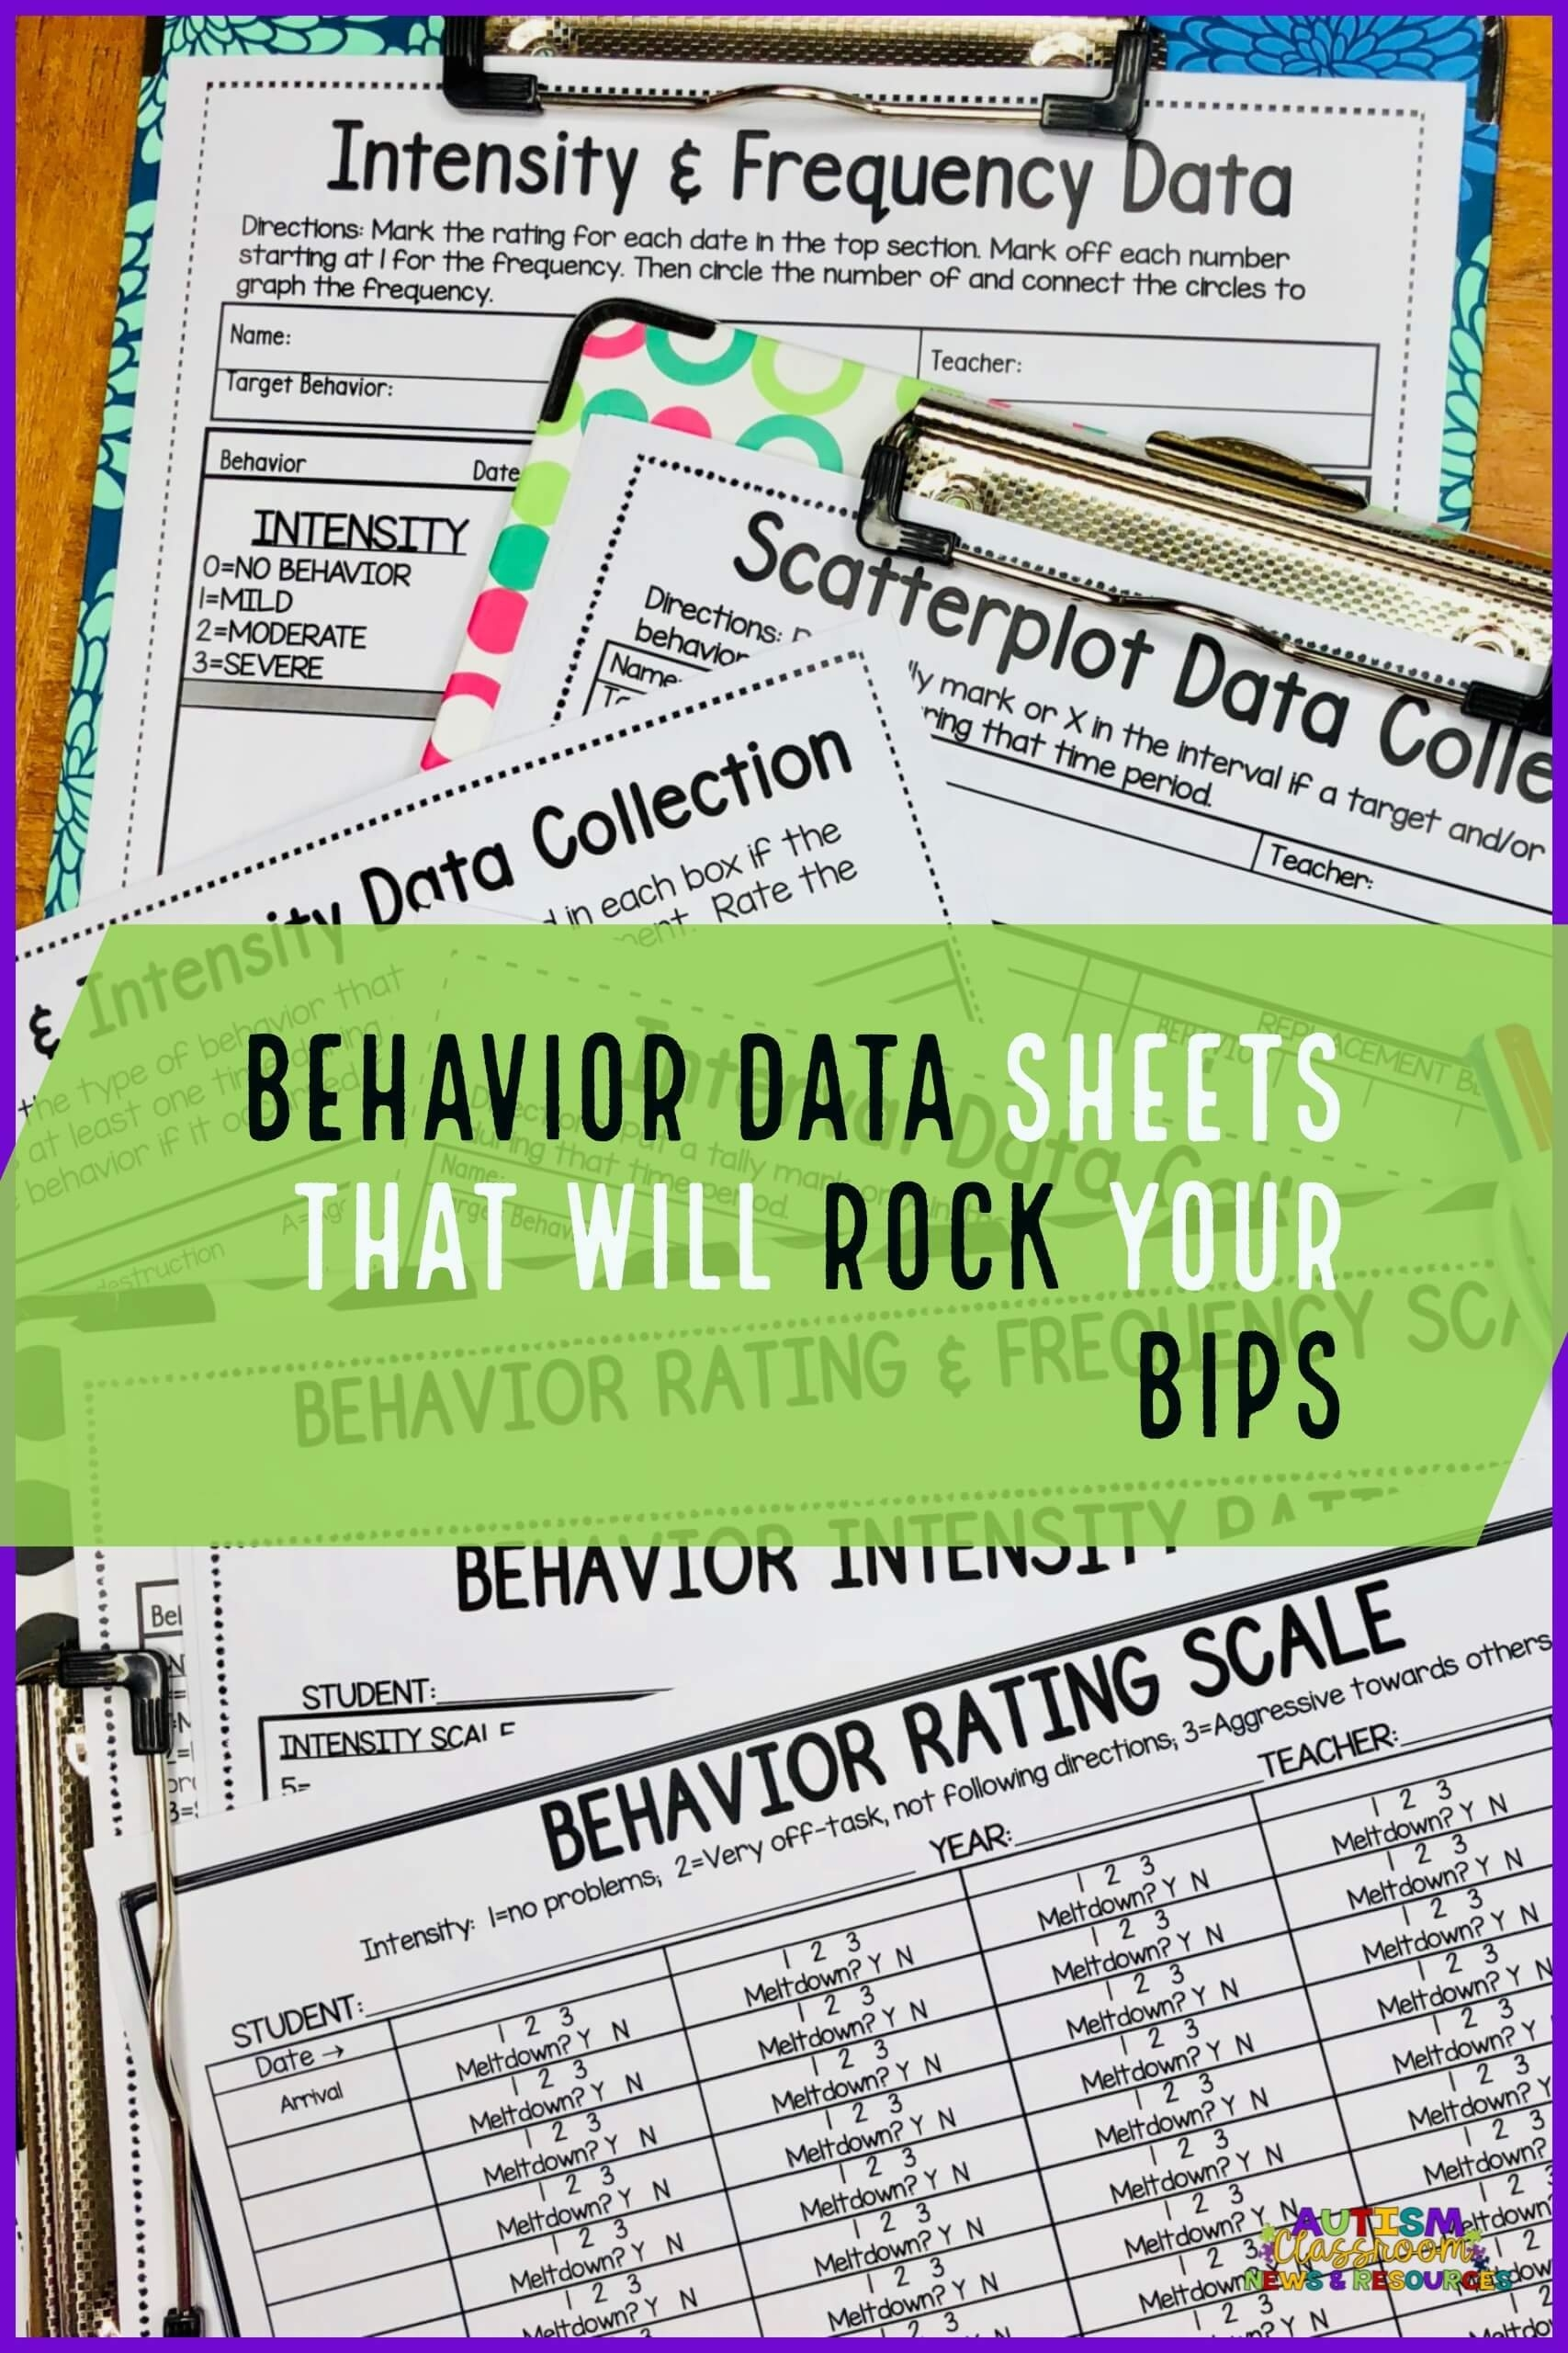 Behavior Data Sheets That Will Rock Your Bips | Autism